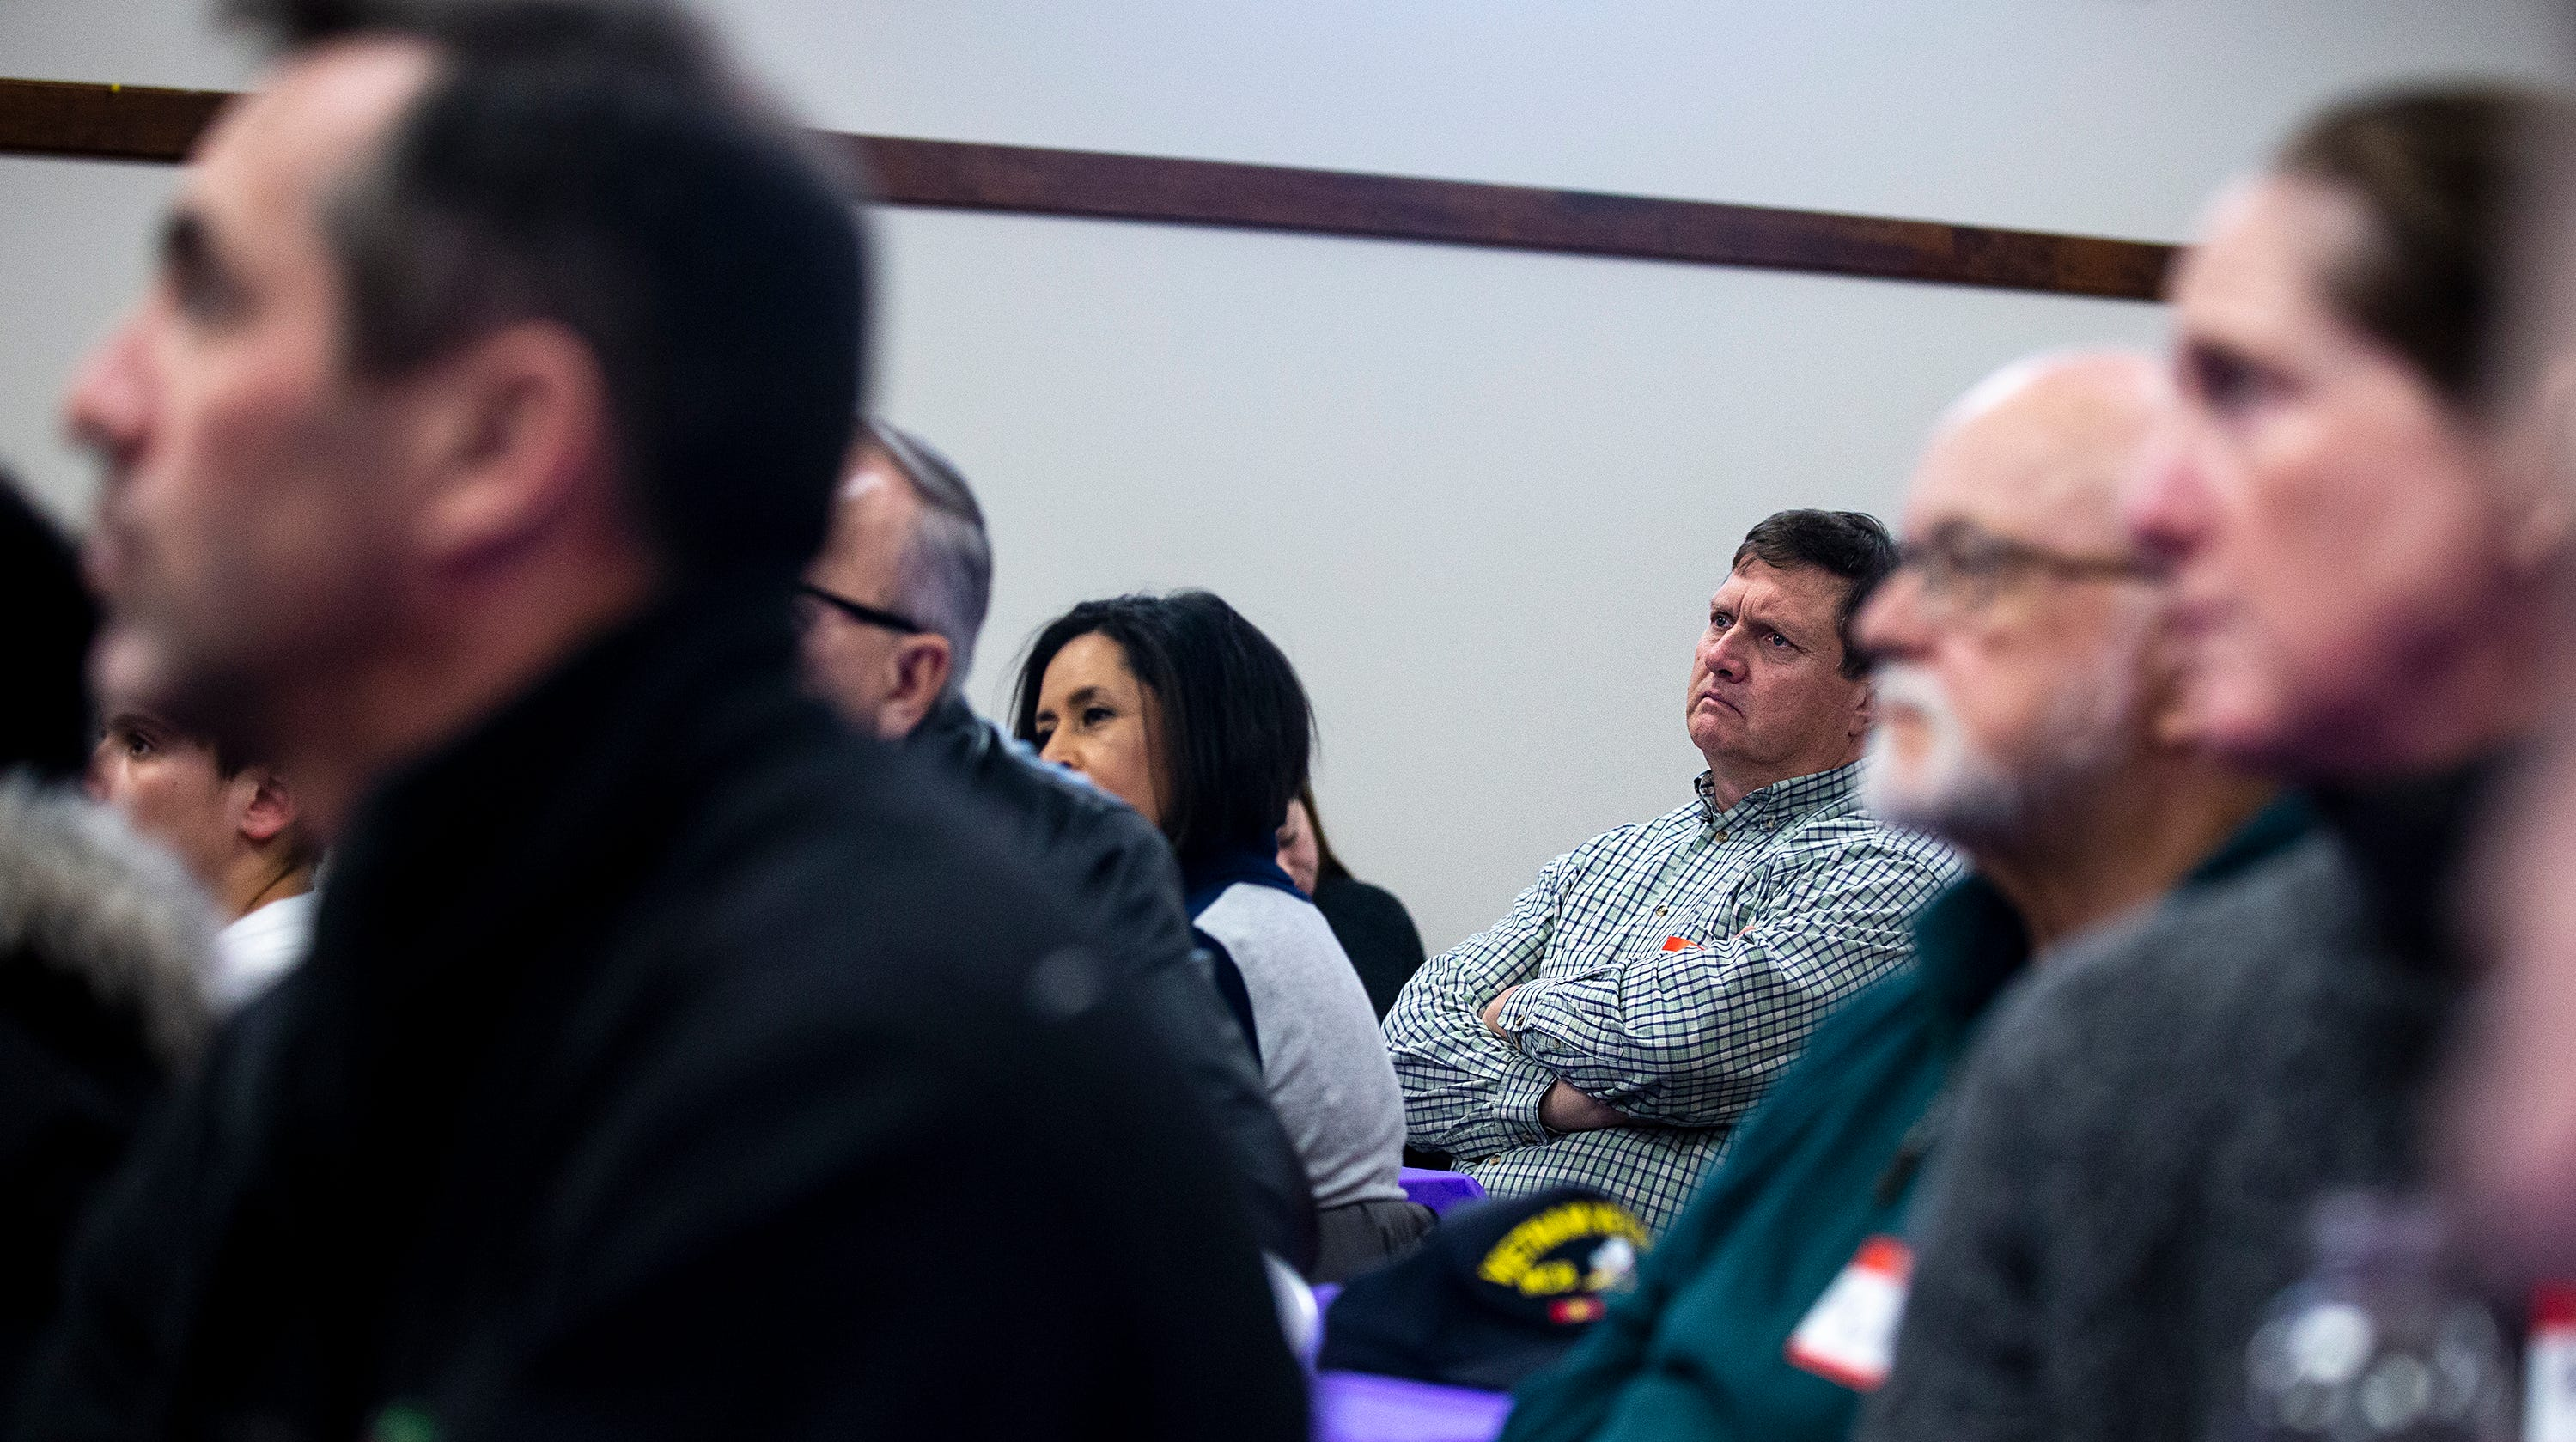 Iowans listen to New York City Mayor Bill de Blasio, who is considering a run for president, at an event hosted by the Asian & Latino Coalition on Sunday, Feb. 24, 2019, in Des Moines.